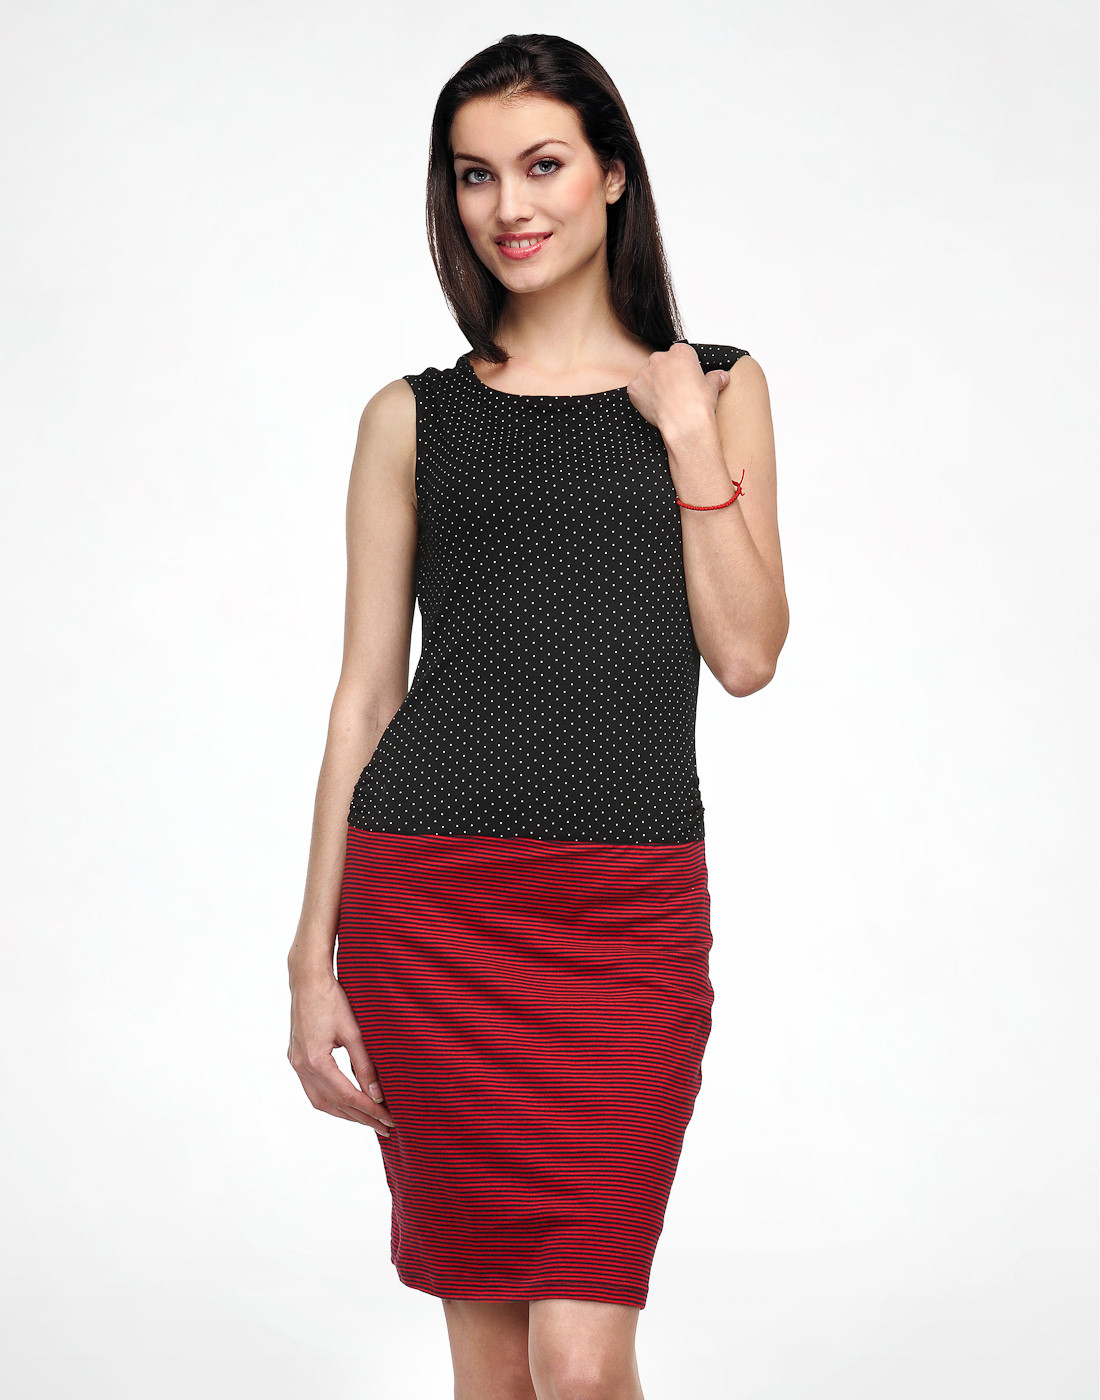 Color Cocktail Womens Black, Red Dress